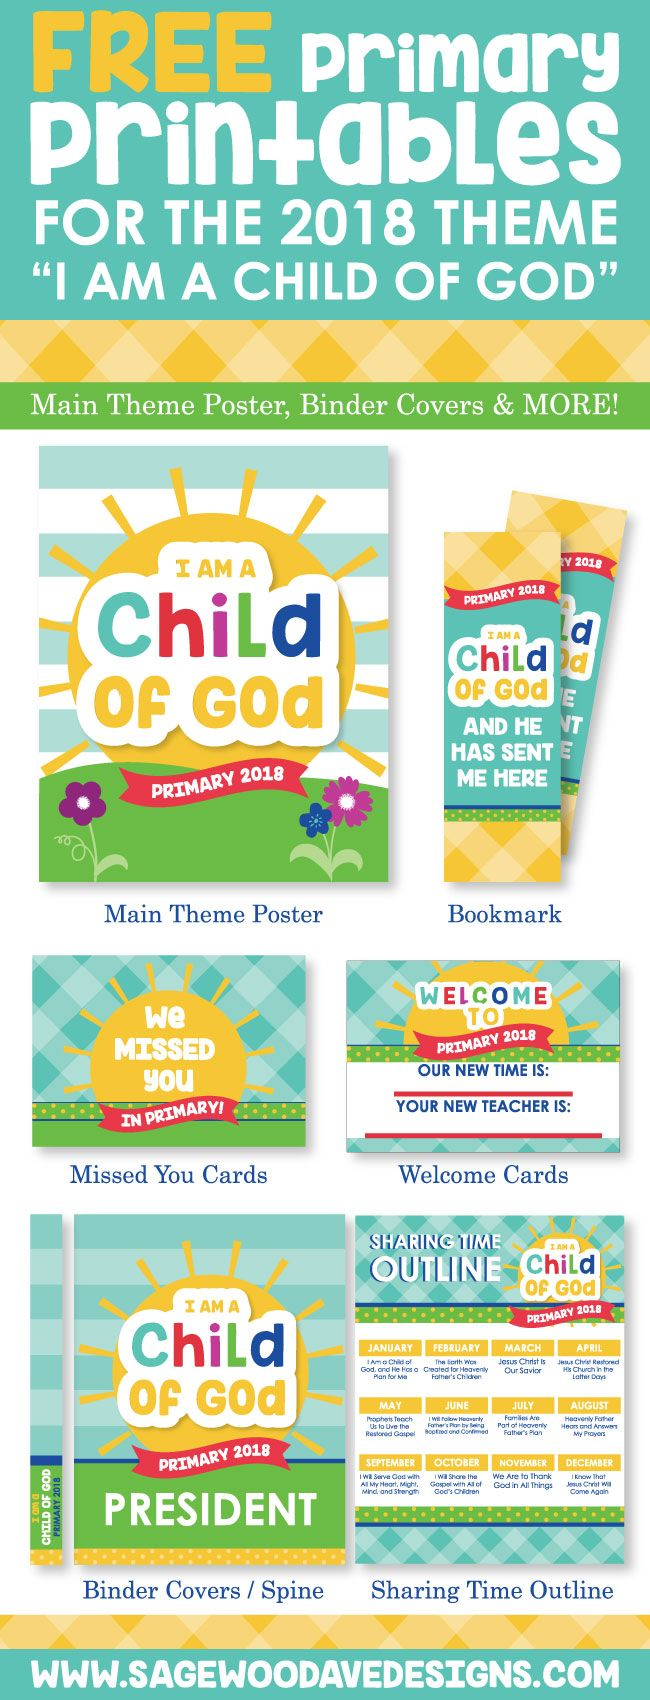 FREE 2018 Lds Primary Printables! Main Theme Poster, Binder Covers ...